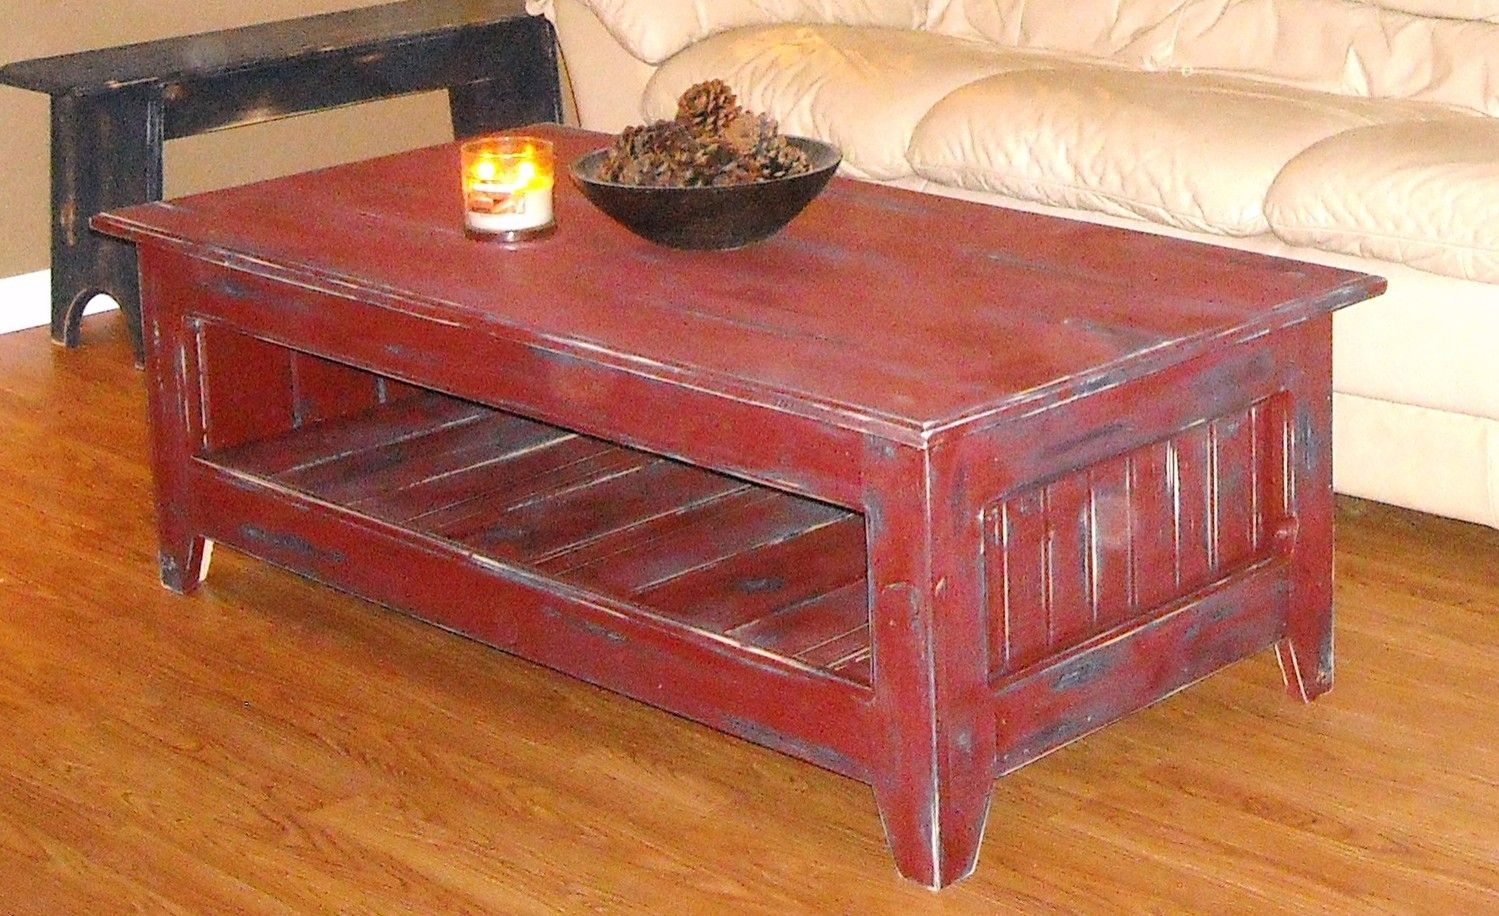 primitive coffee table country home rustic end tables and log design powell bedroom vanities kmart coupons oval small renovations thomasville furniture dining room wall art ethan